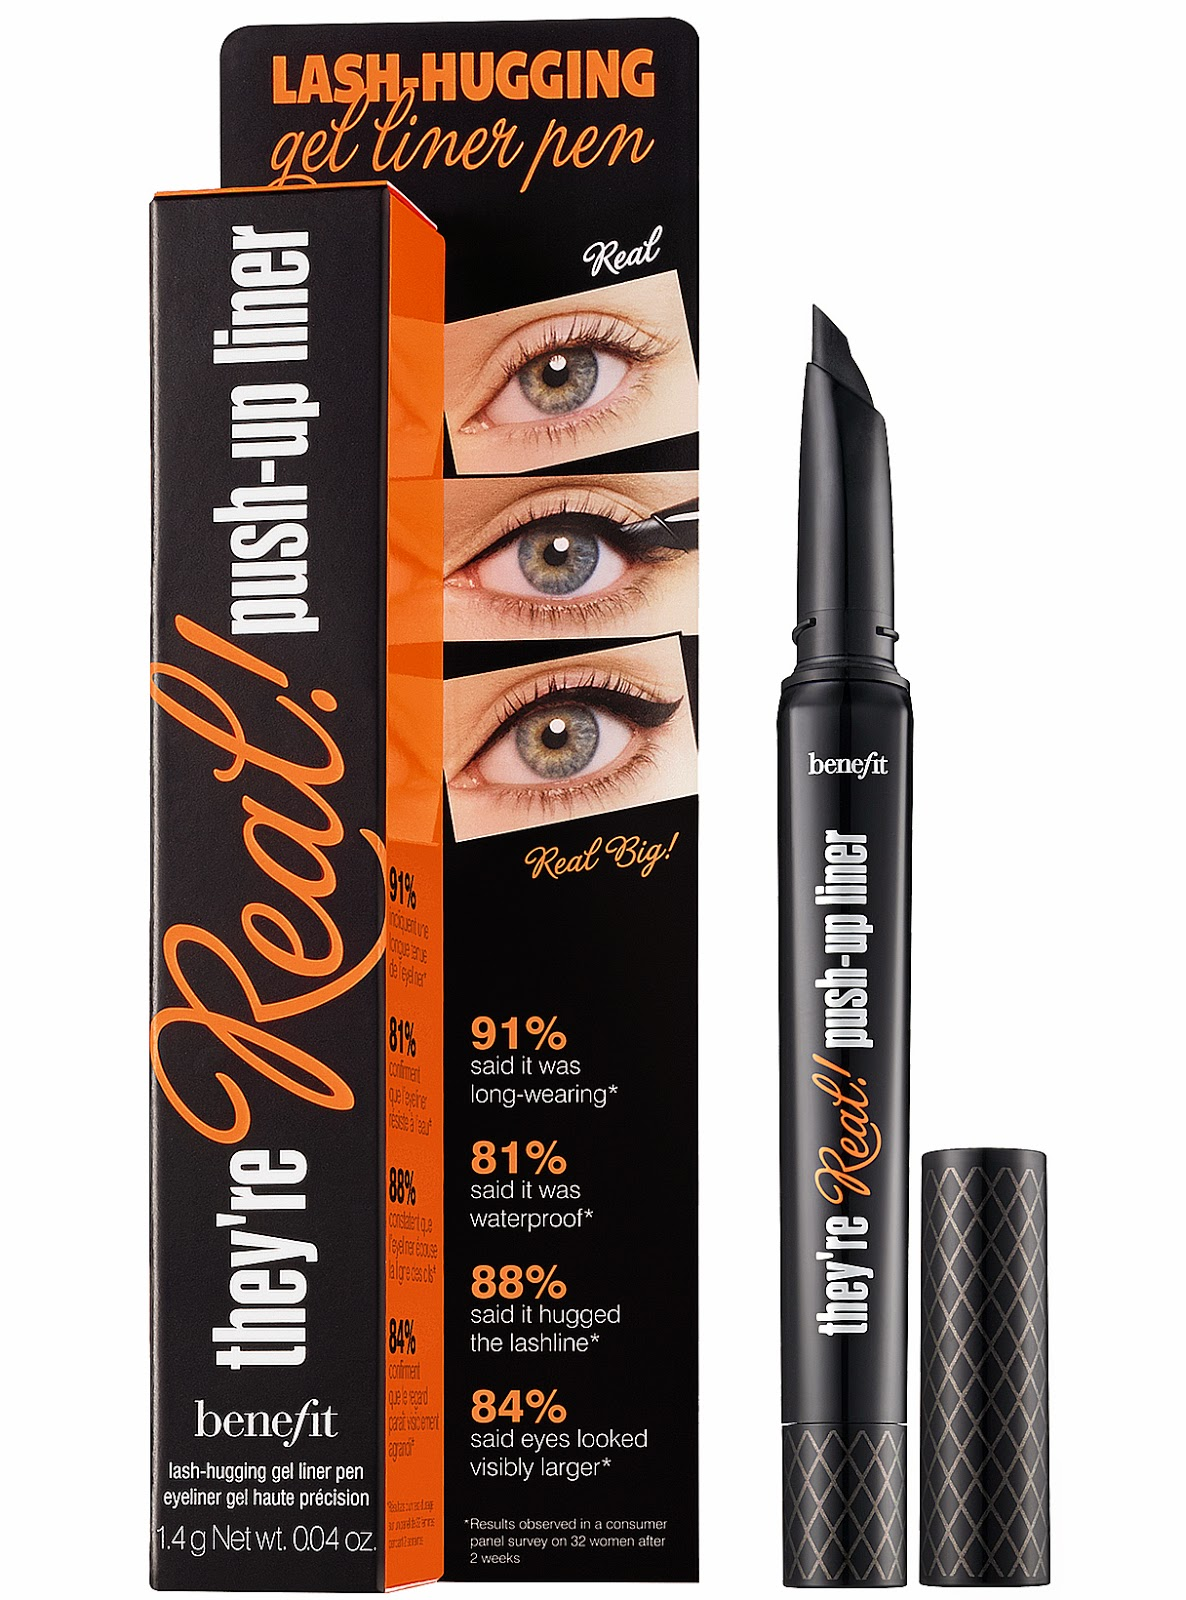 Benefit-Theyre-Real-Push-Up-Liner_lash-hugging-gel-liner-pen.jpg